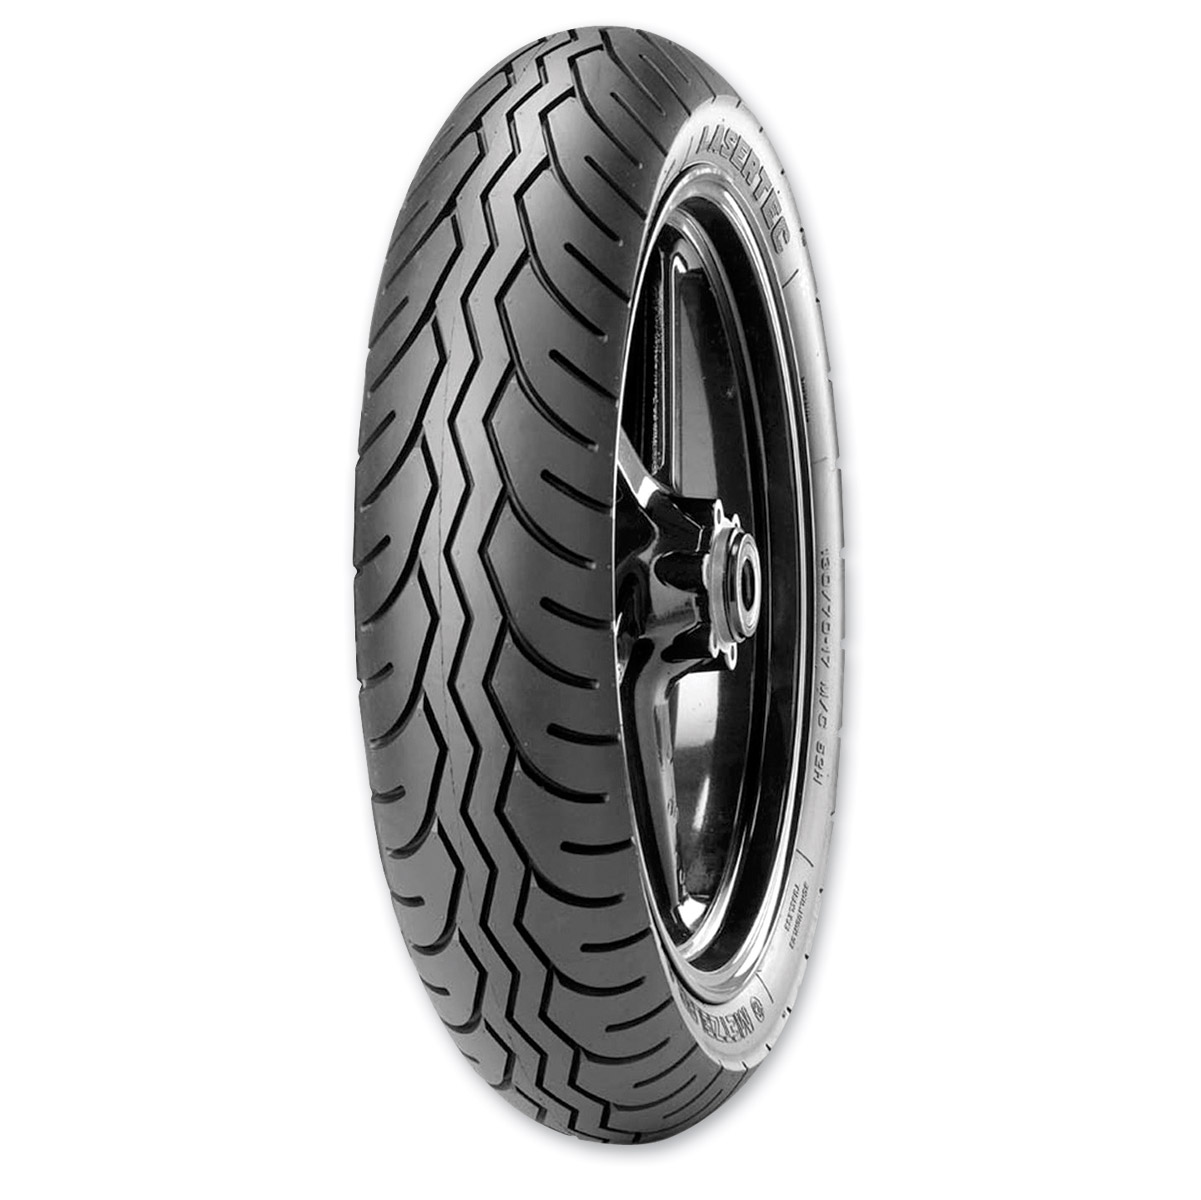 Metzeler Lasertec 140/80-17 Rear Tire